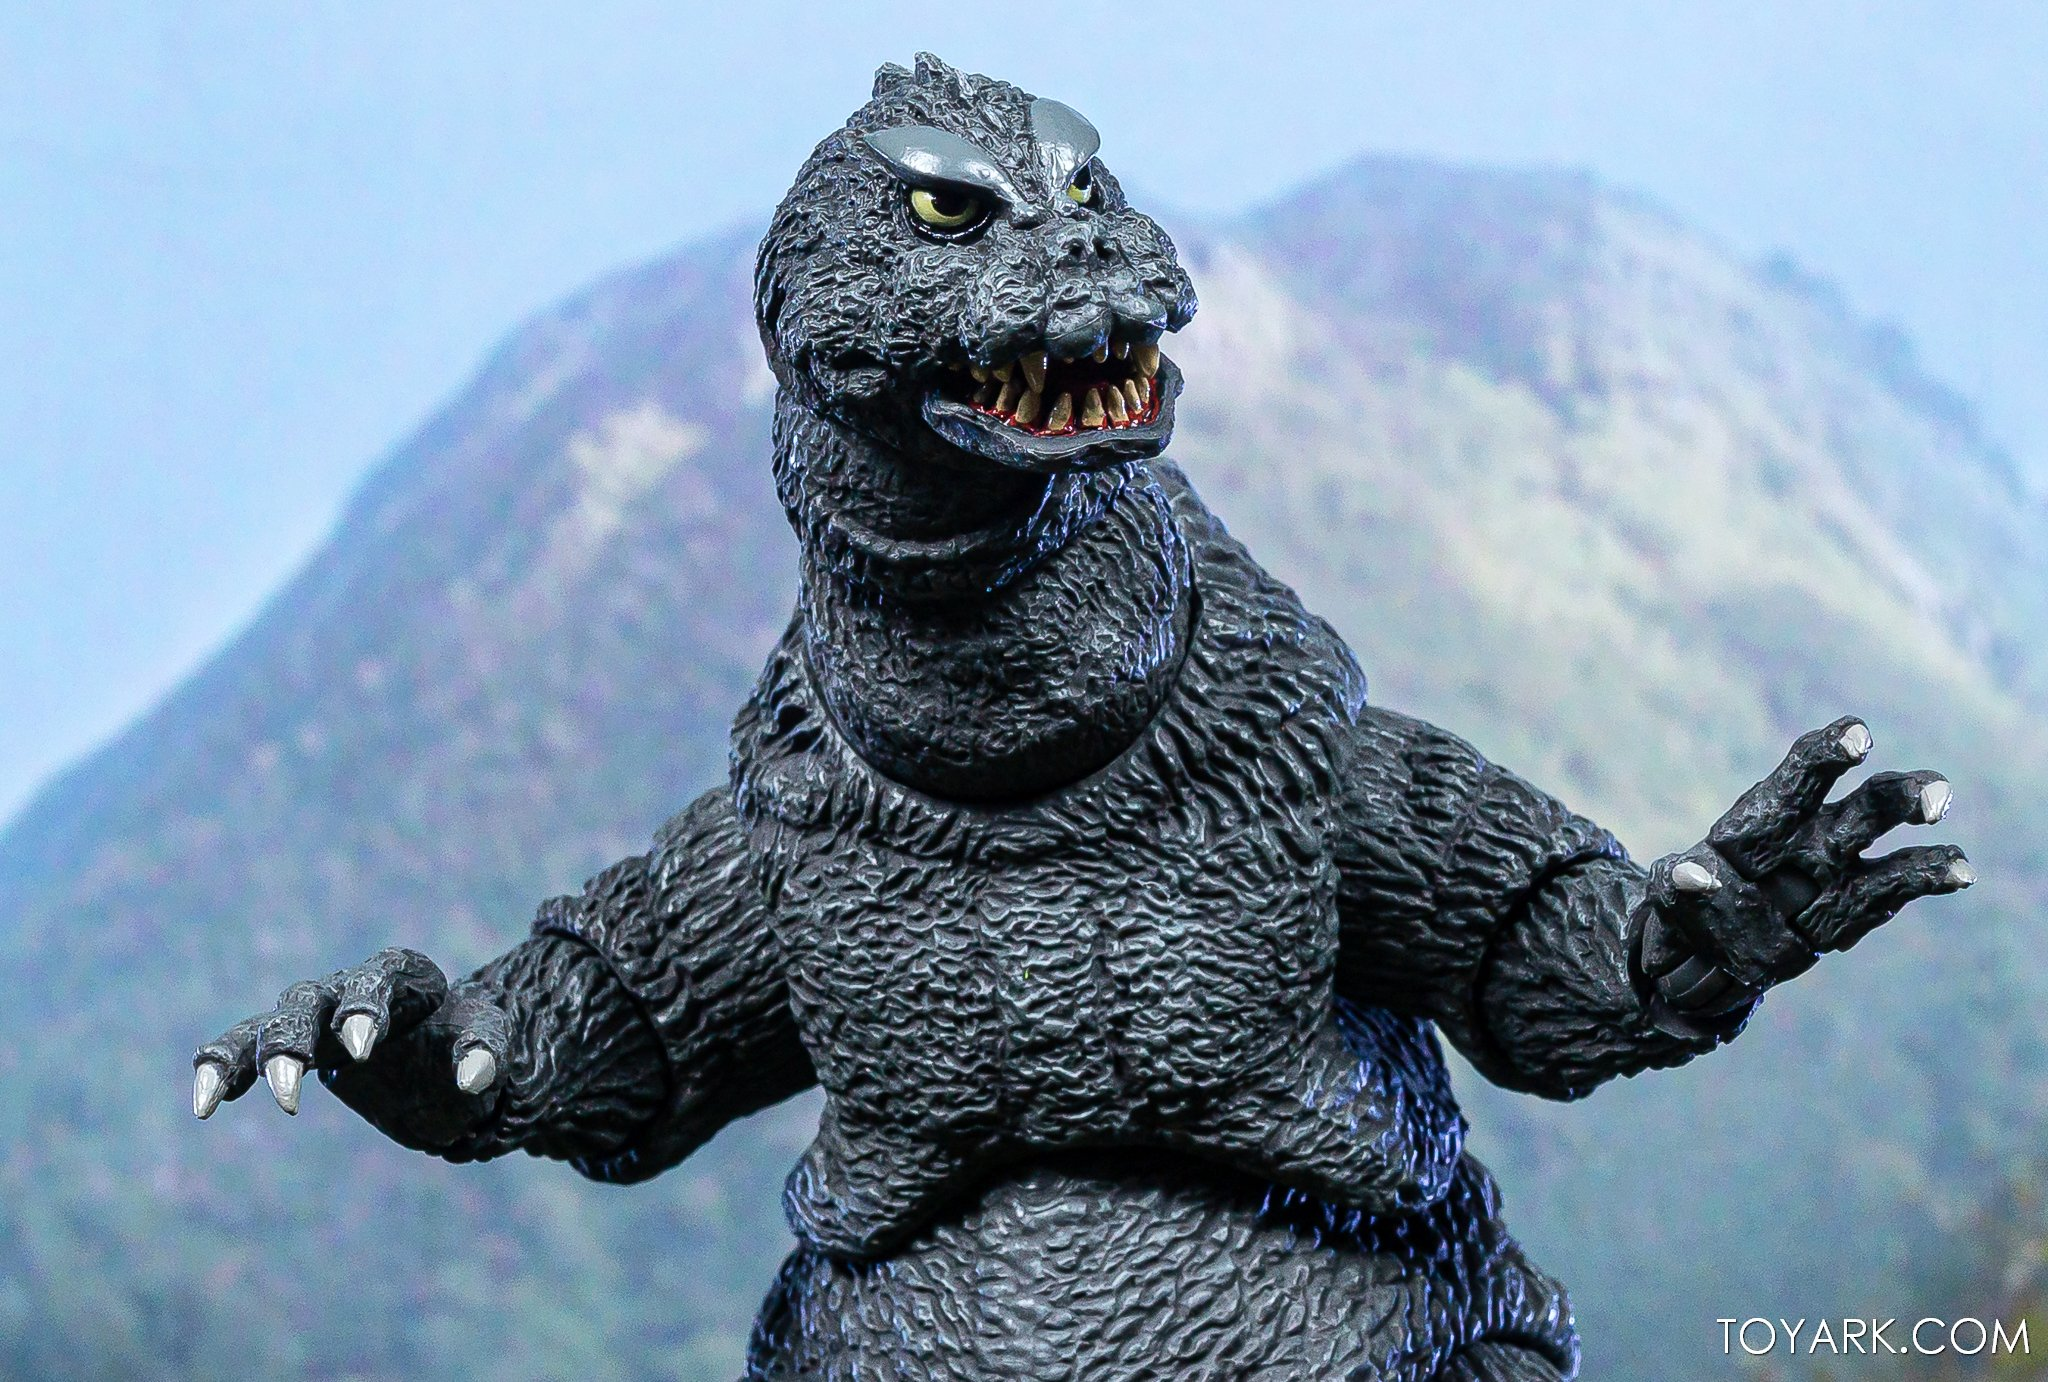 https://news.toyark.com/wp-content/uploads/sites/4/2019/12/NECA-Godzilla-1964-Figure-011.jpg